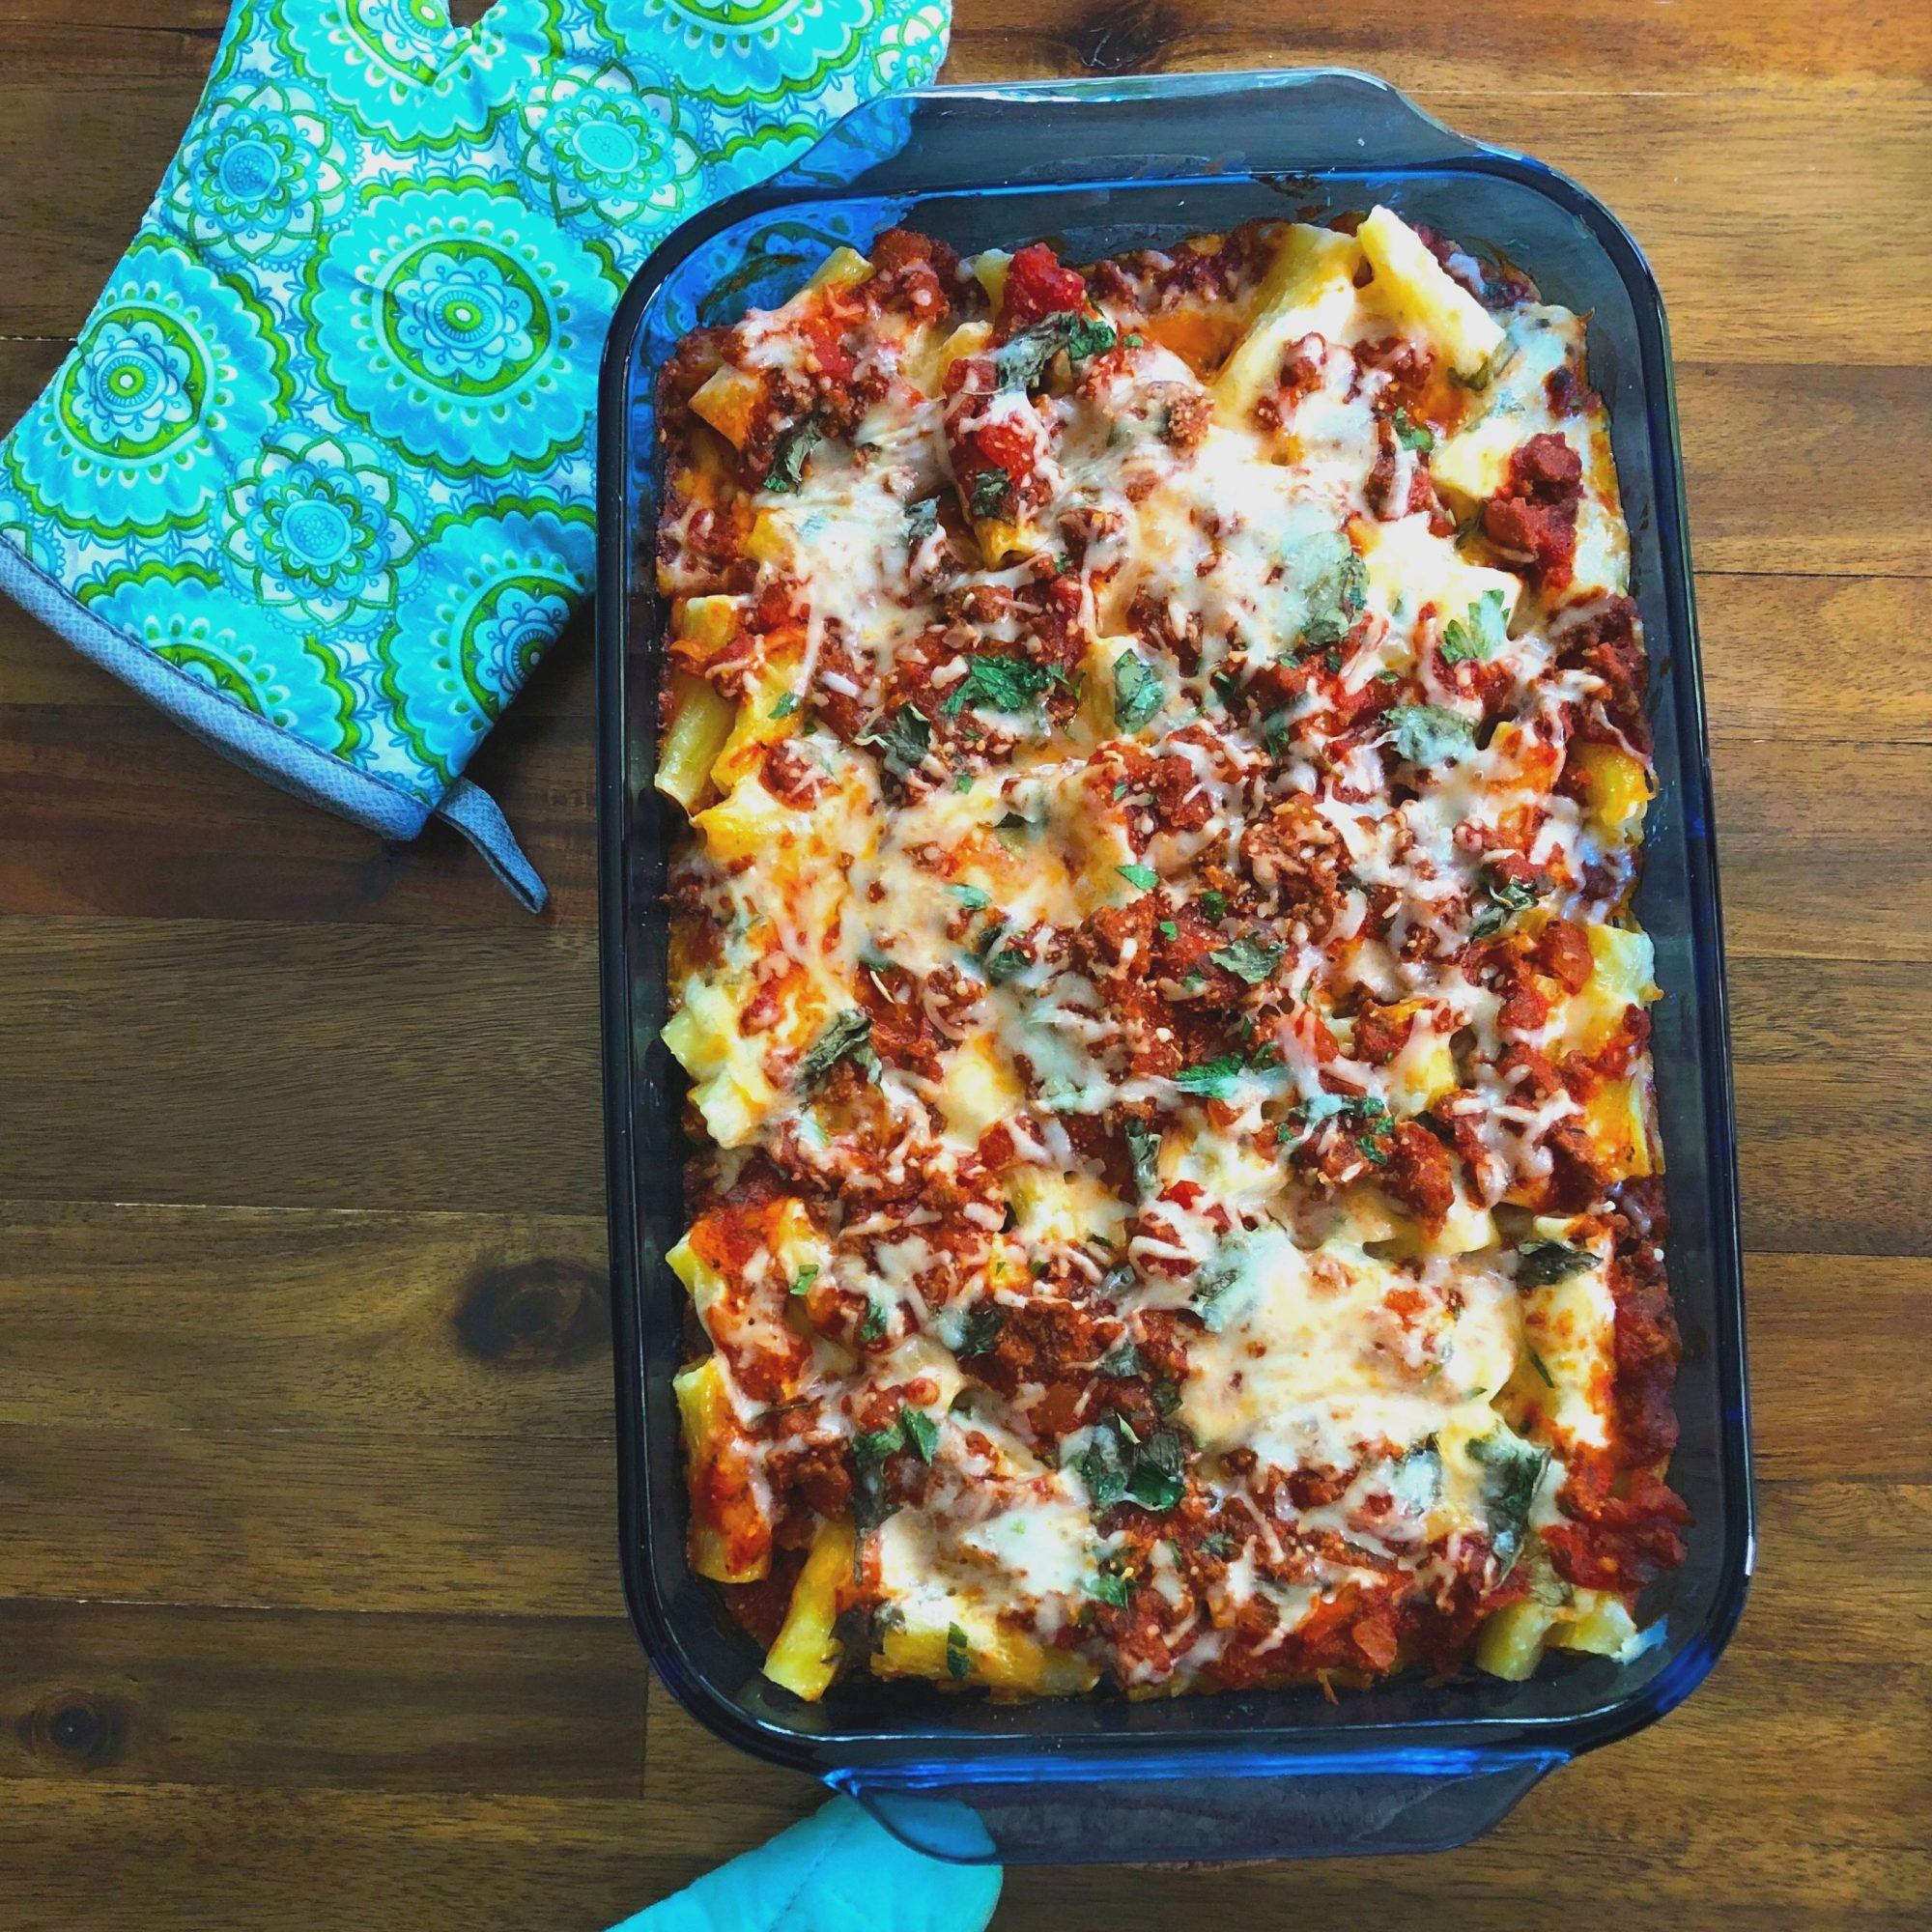 Baked Ziti in a blue dish